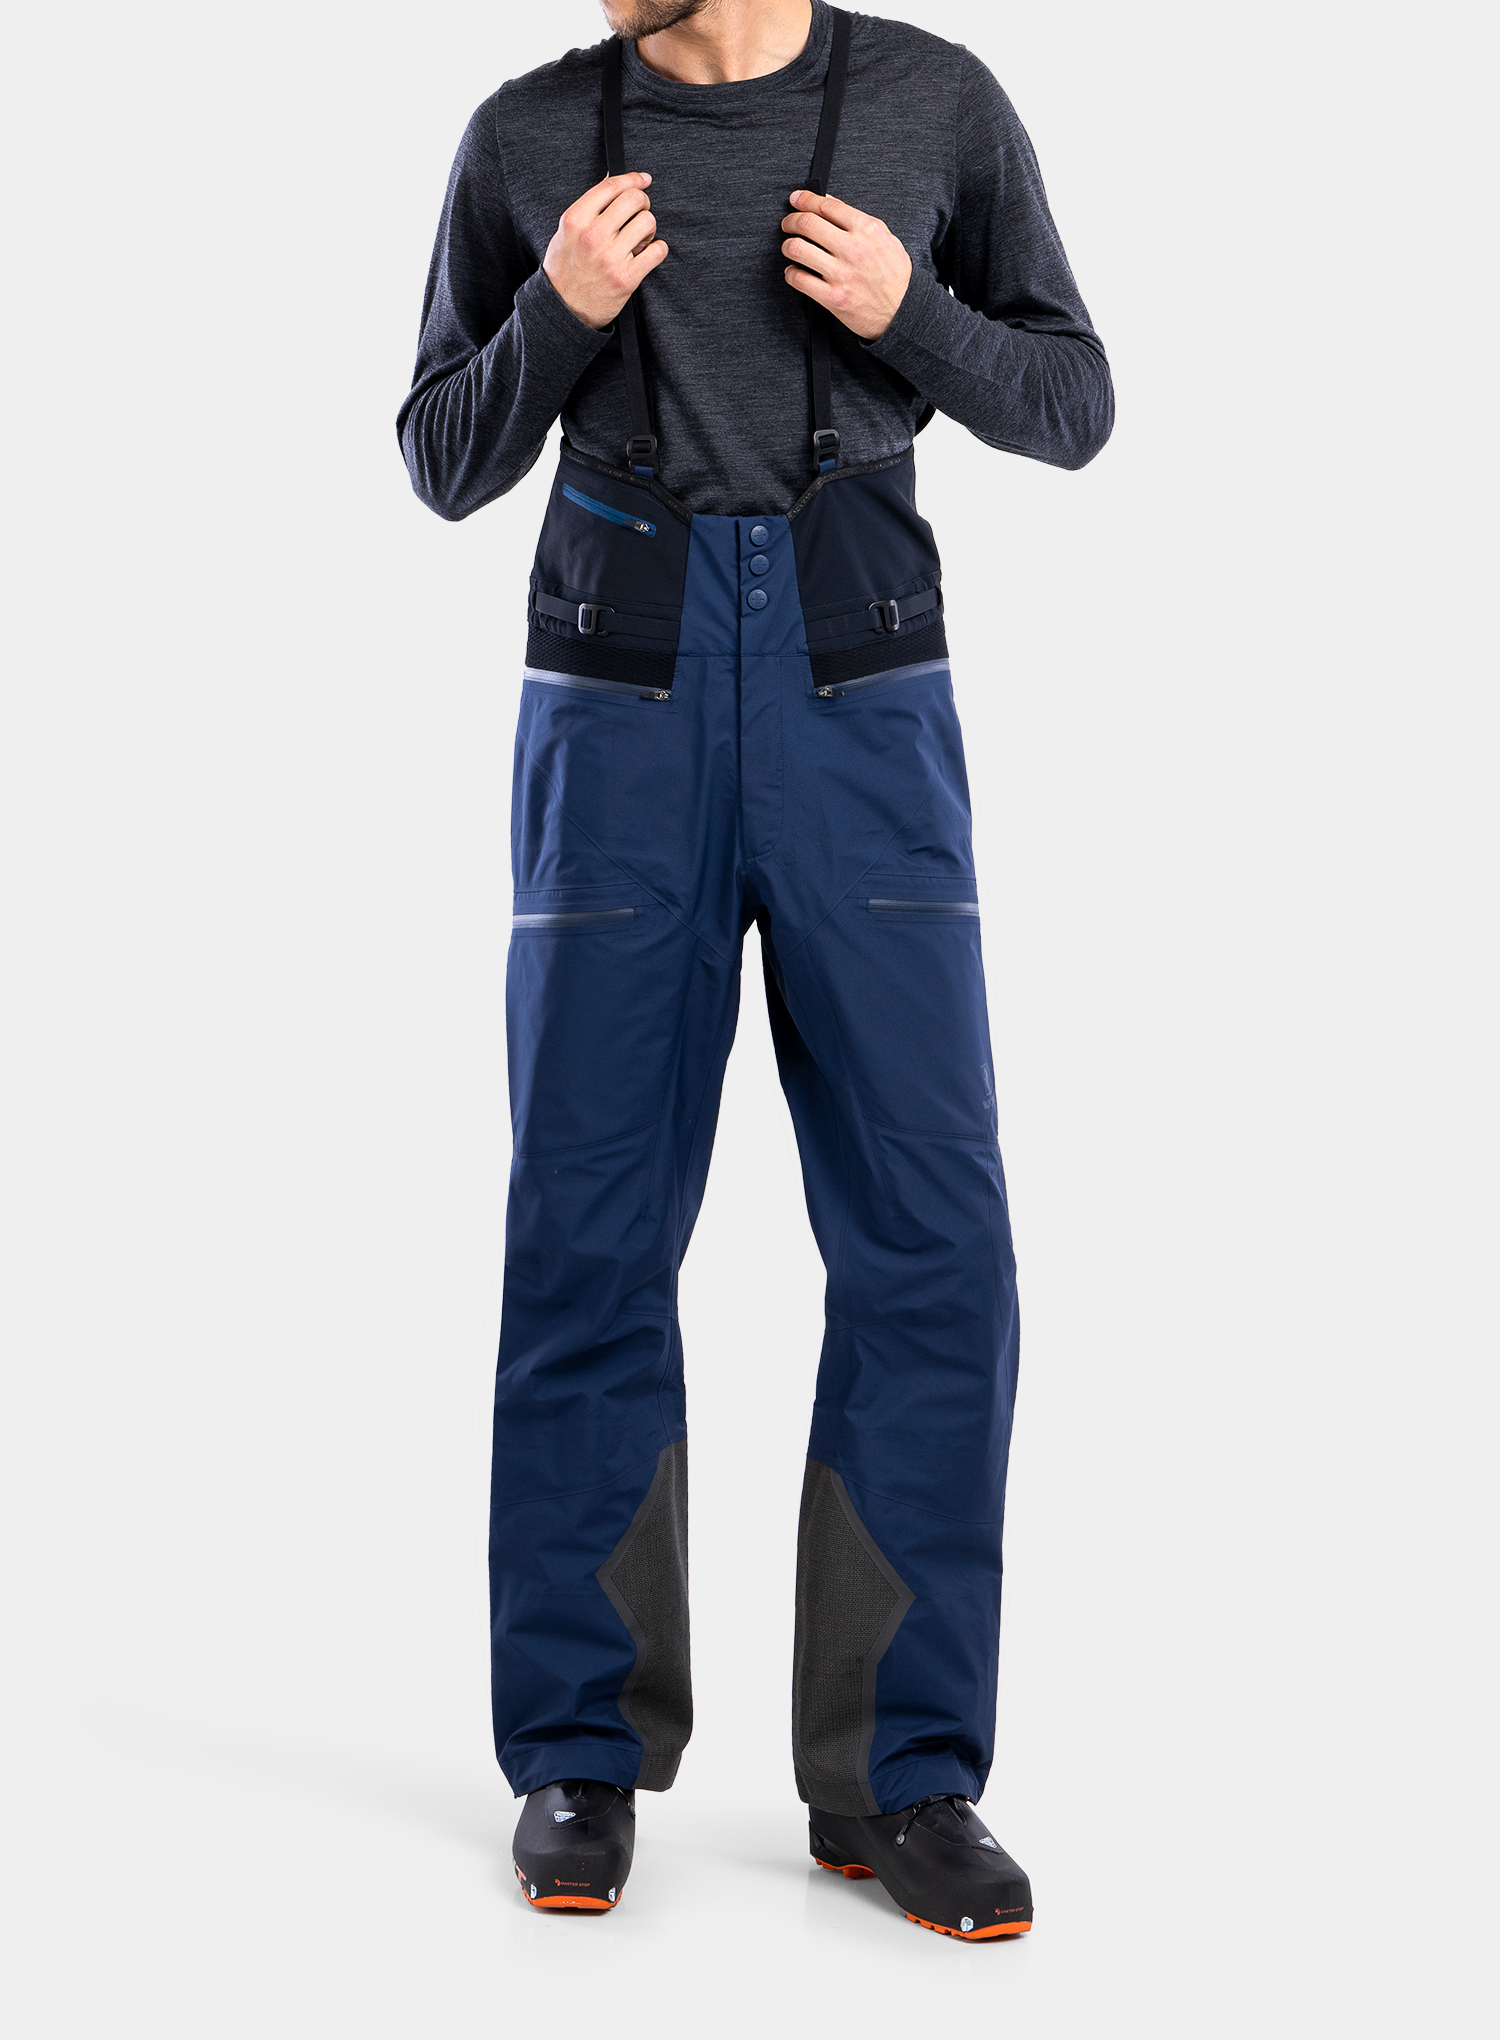 Spodnie GORE-TEX BlackYak Brangus Pants - dress blues - zdjęcie nr. 1